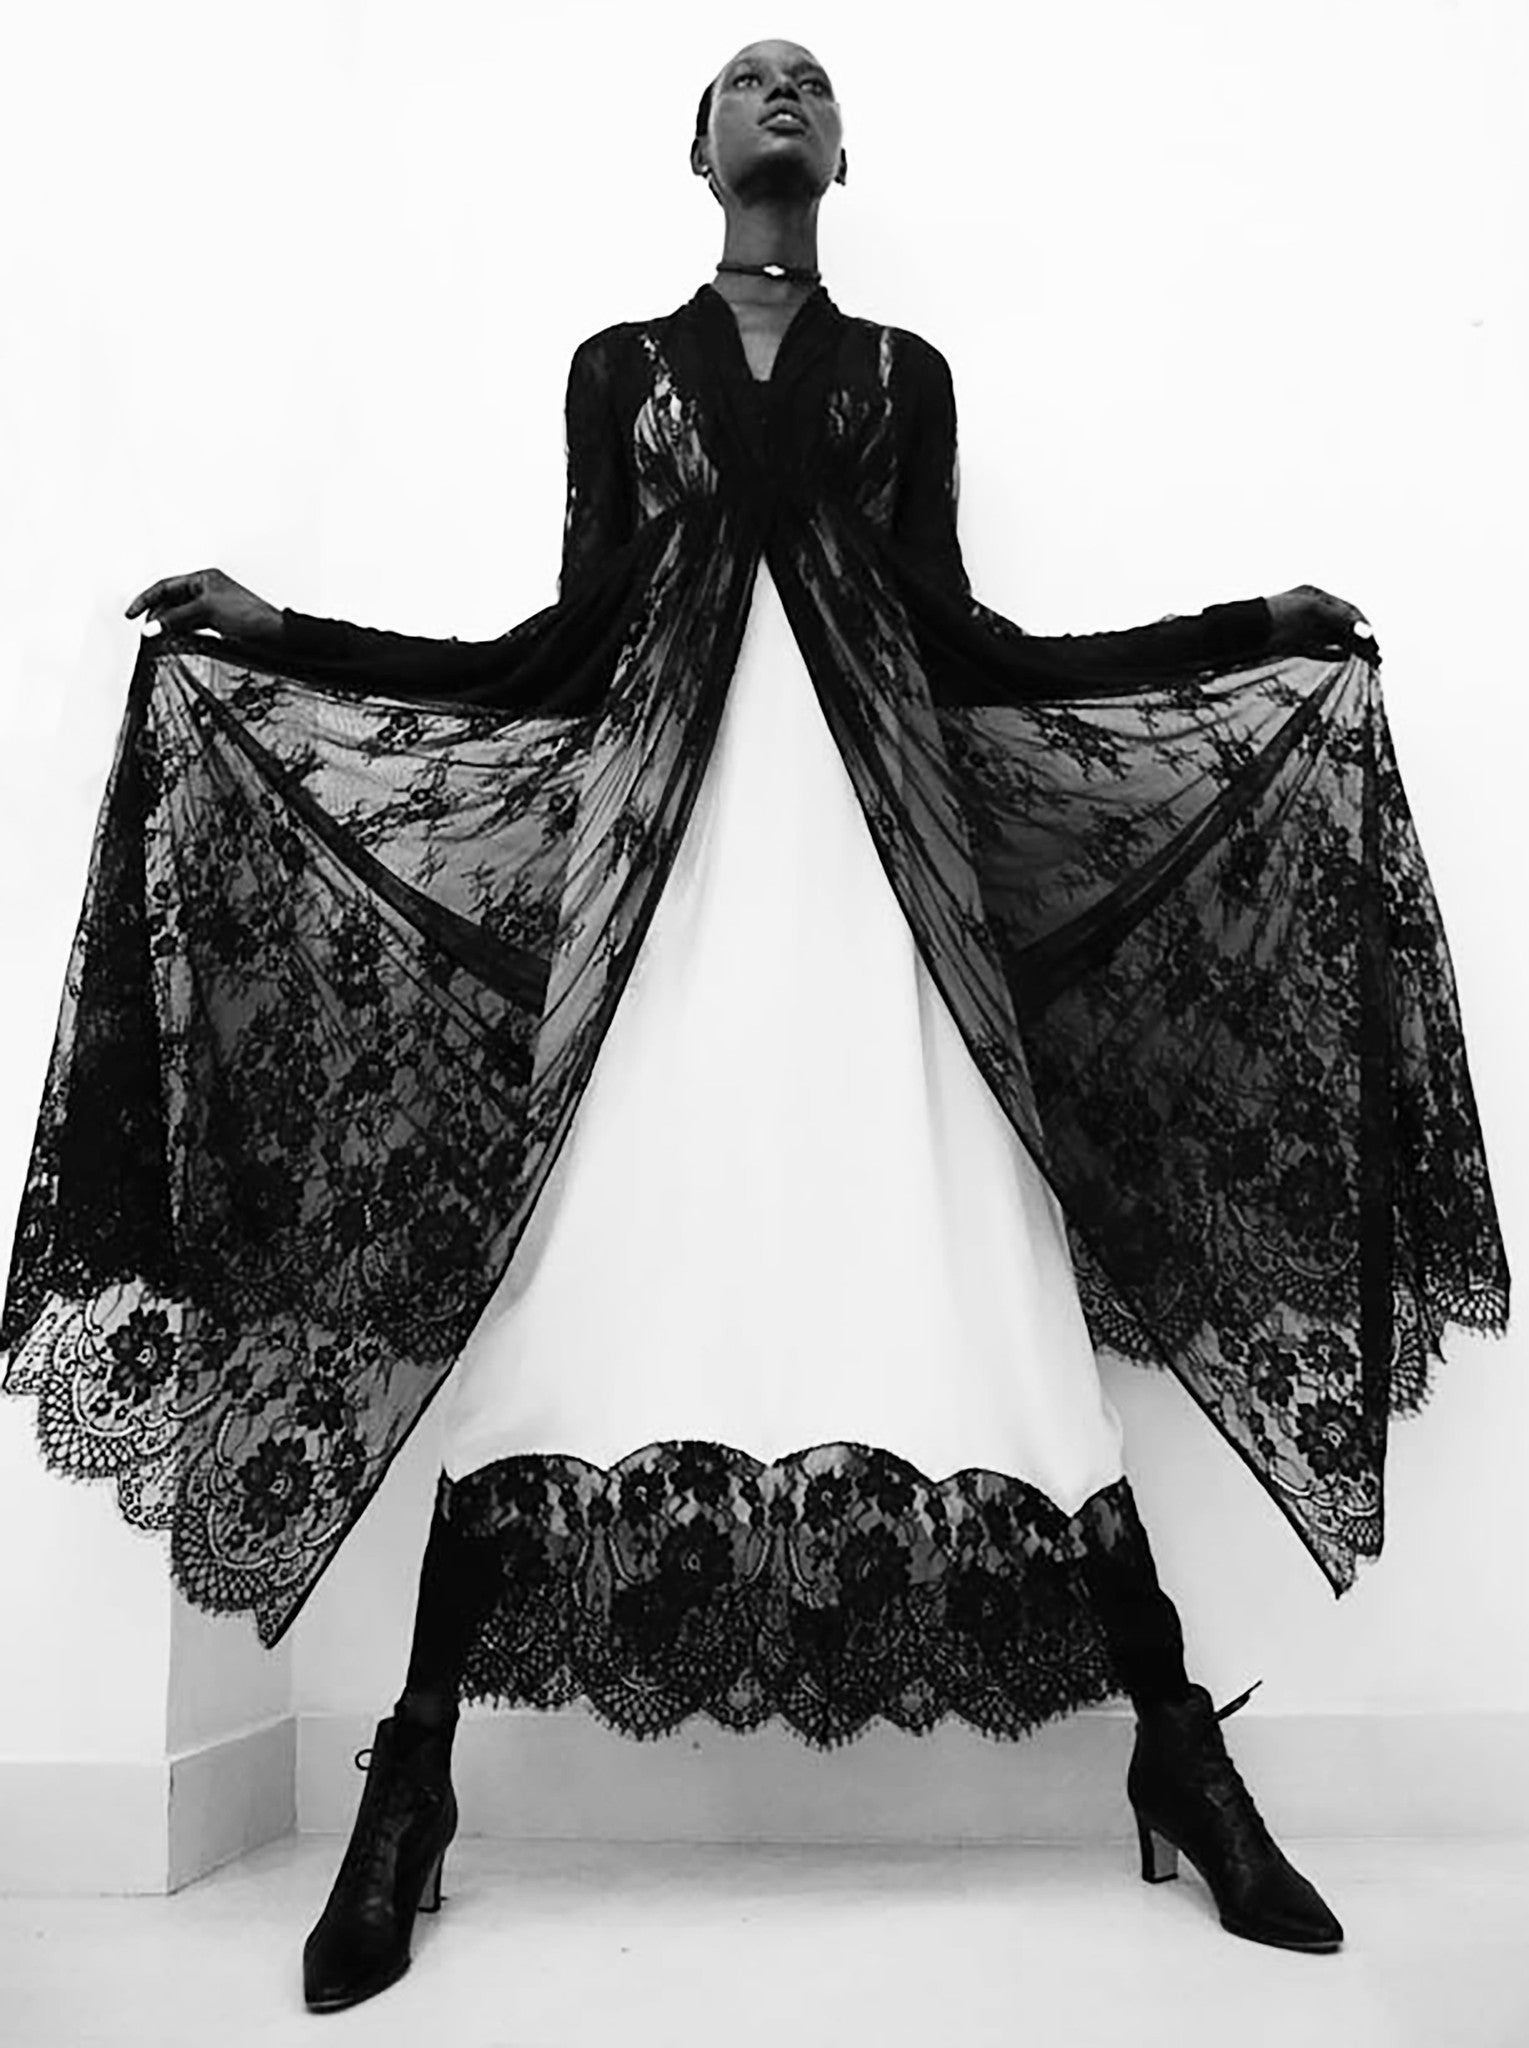 Ajak Deng IMG Model French Lace Empire Waist Coat Sheer Wendy Nichol Clothing Fashion Designer Runway Show Handmade in NYC SS15  Black Sheer Lace